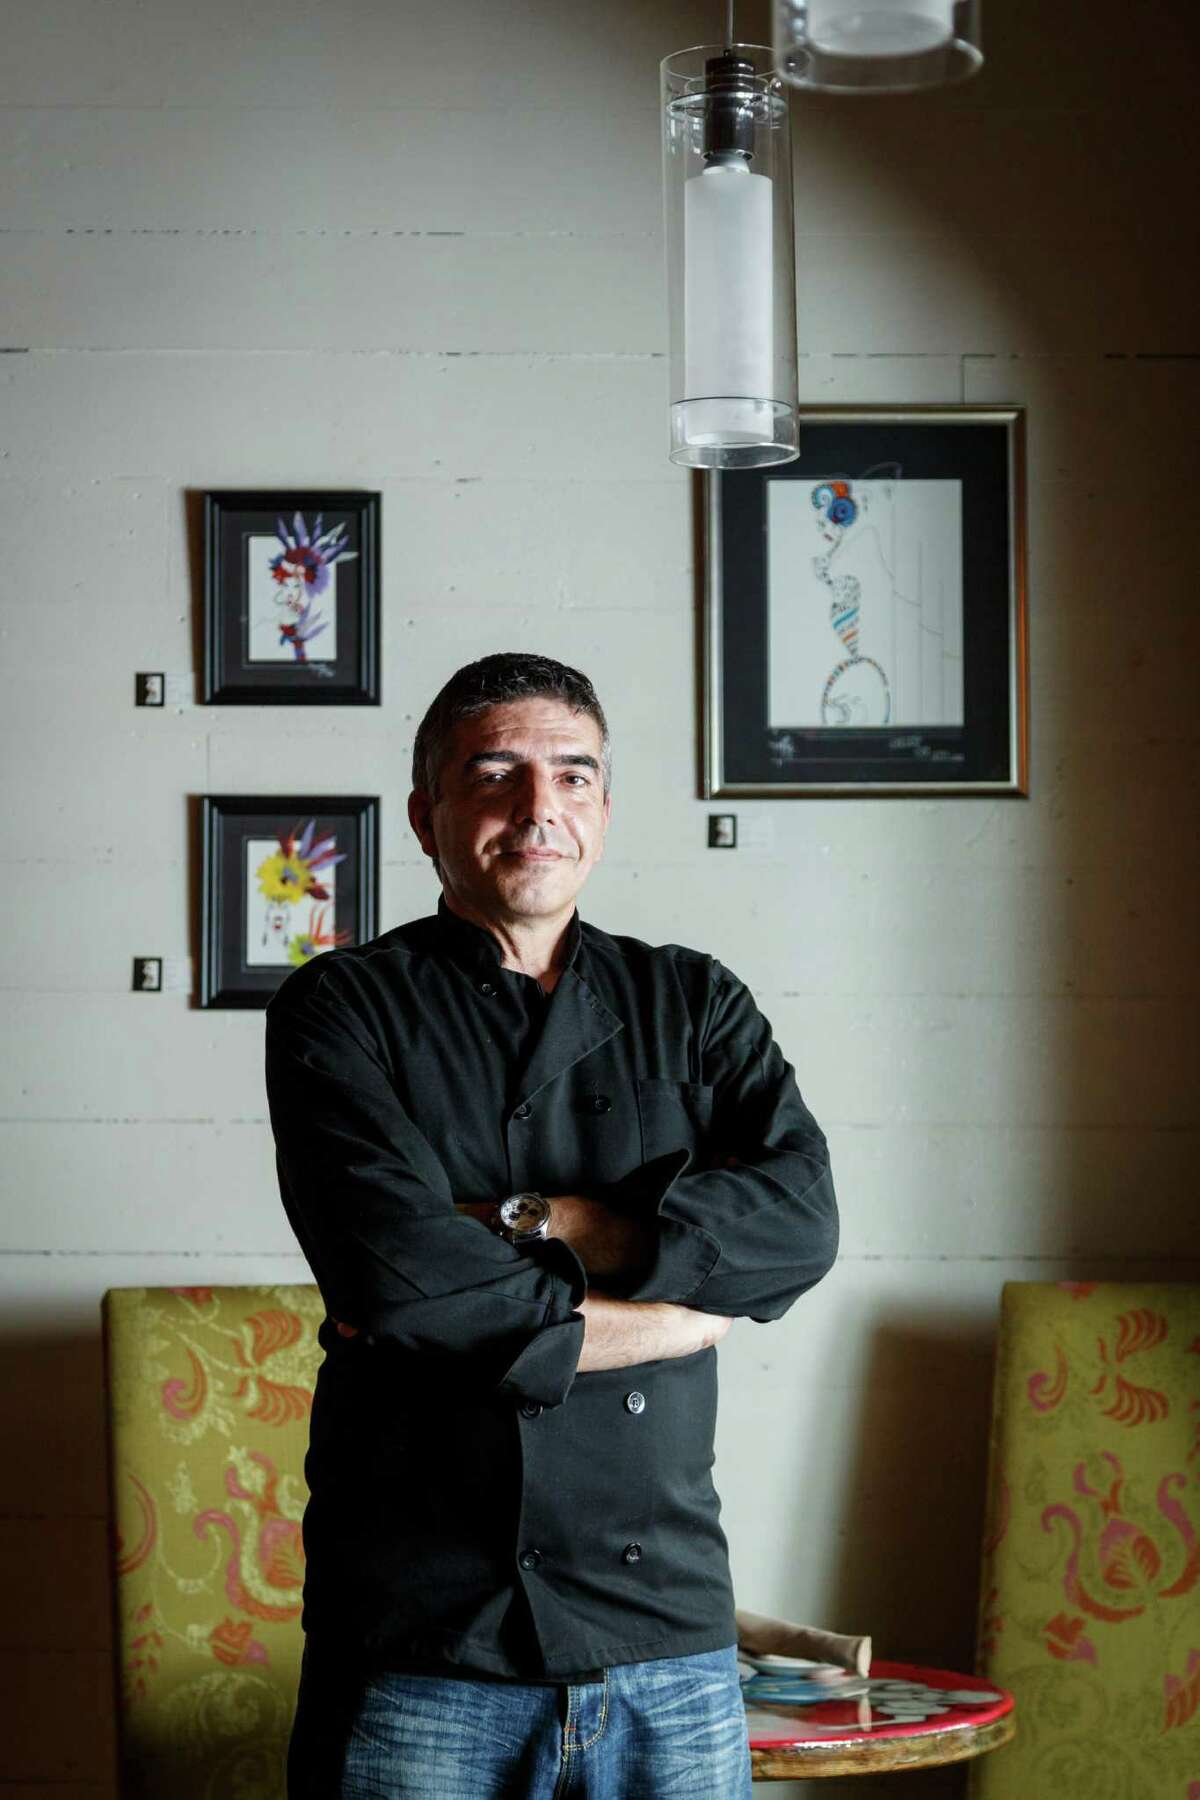 Chef and owner Philippe Harel, at Salé Sucré a new French bistro and wine bar in the Heights, Monday, July 15, 2013, in Houston. ( Michael Paulsen / Houston Chronicle )